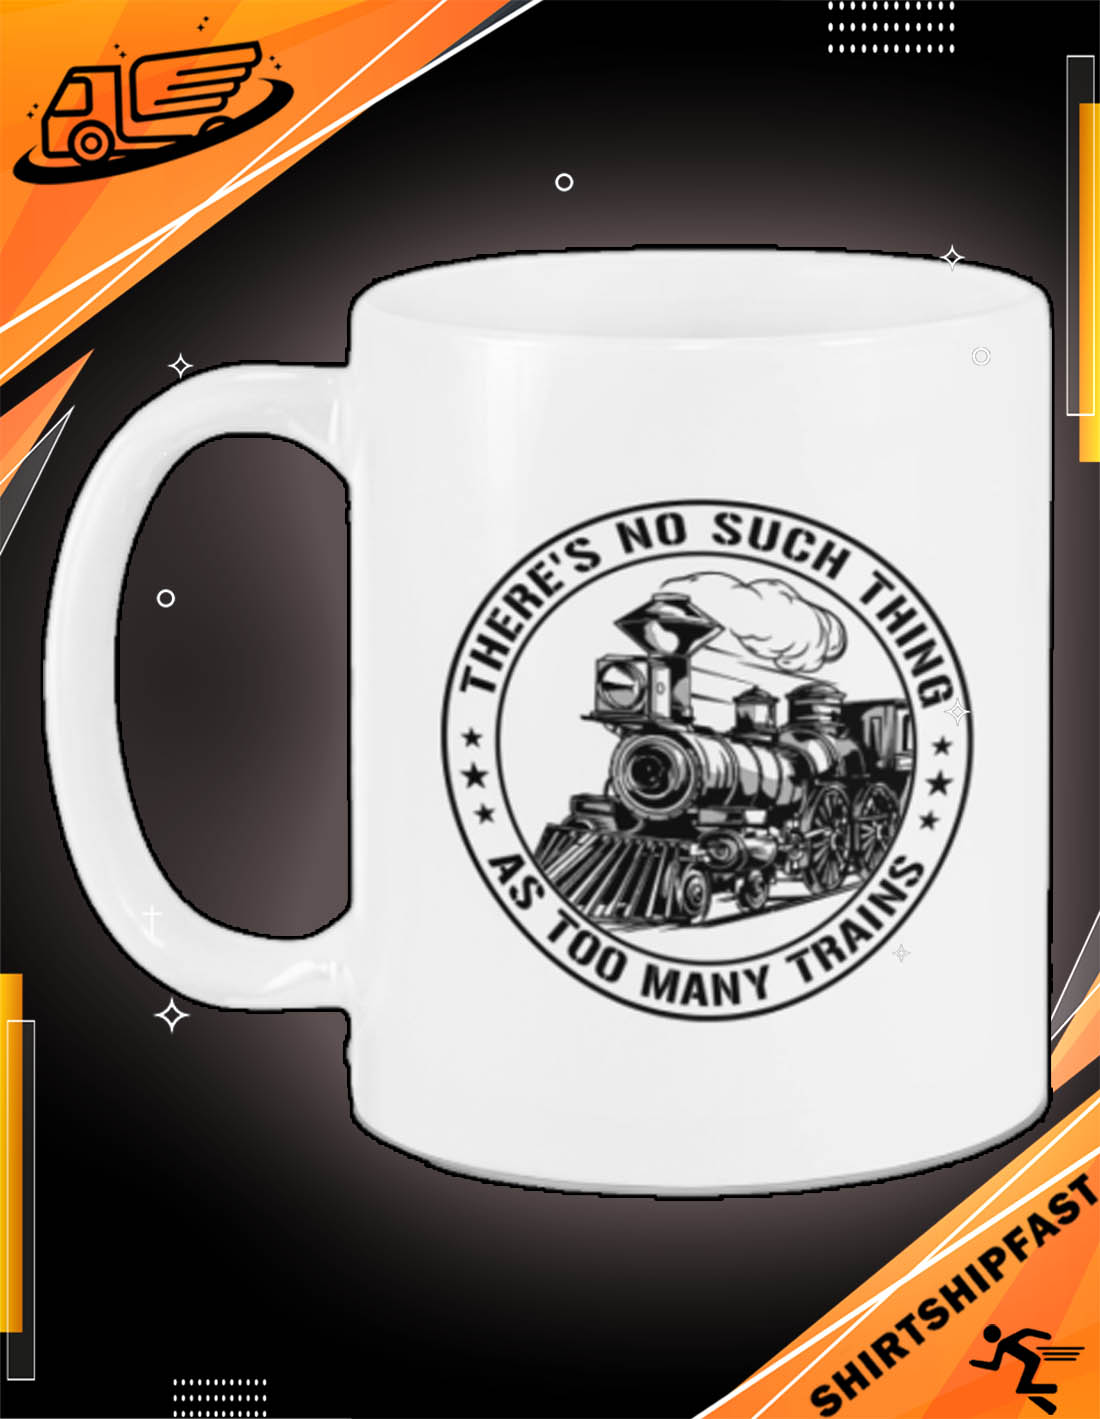 Model Railroad There's no such thing as too many trains mug - Picture 3